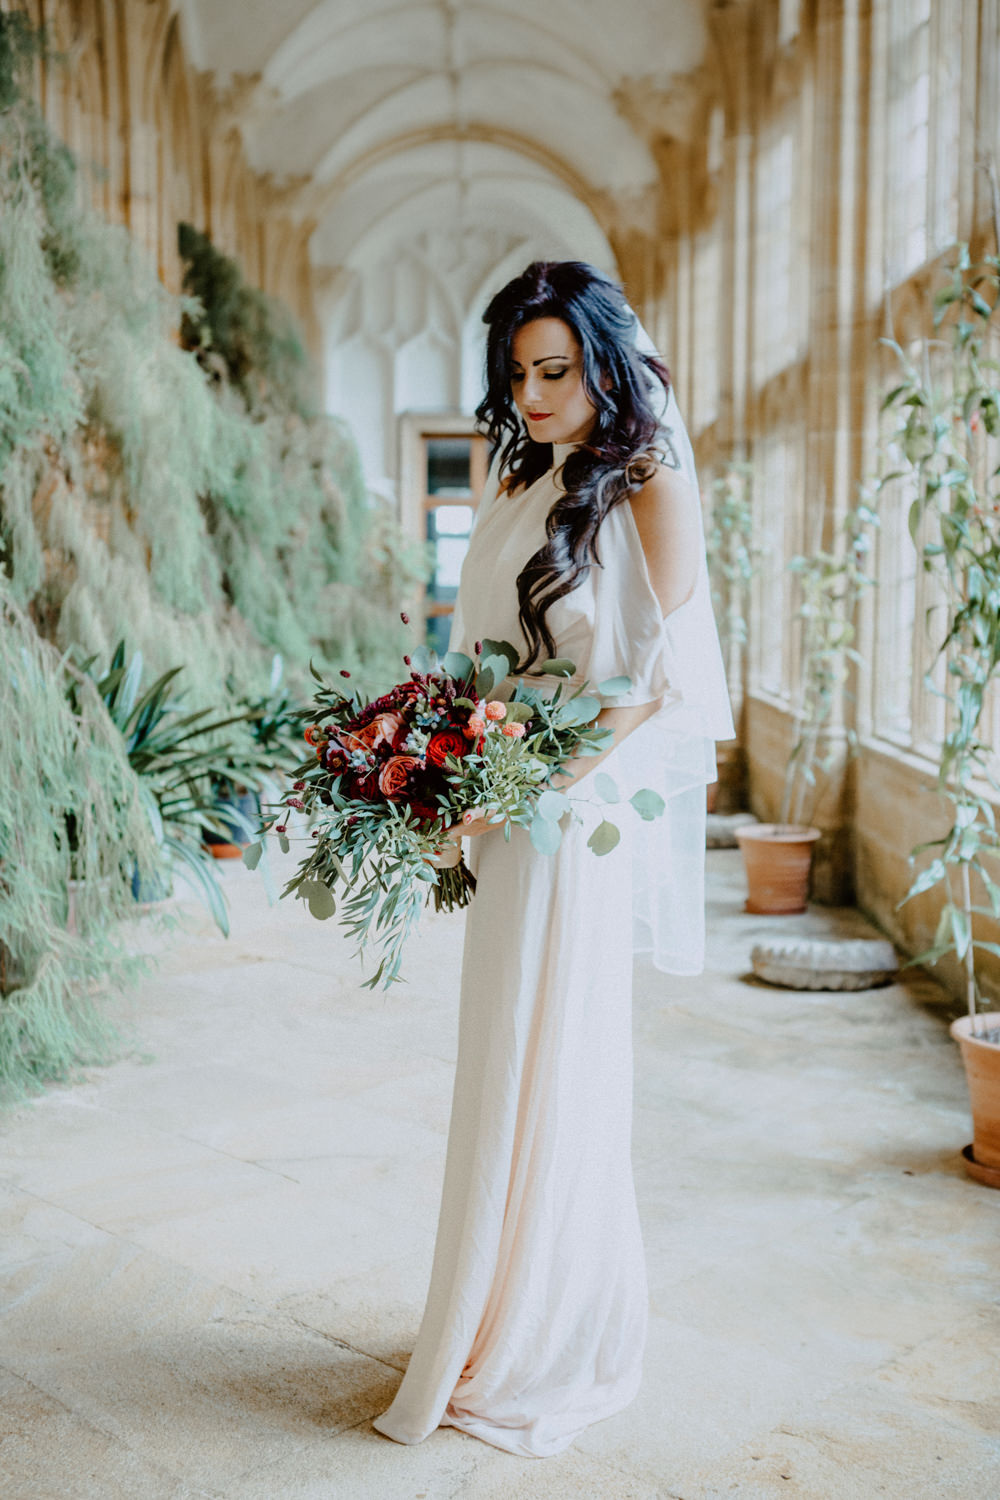 Dress Gown Bride Bridal Cold Shoulder Sleeves Veil Ethereal Romantic Wedding Ideas Katherine Newman Photography